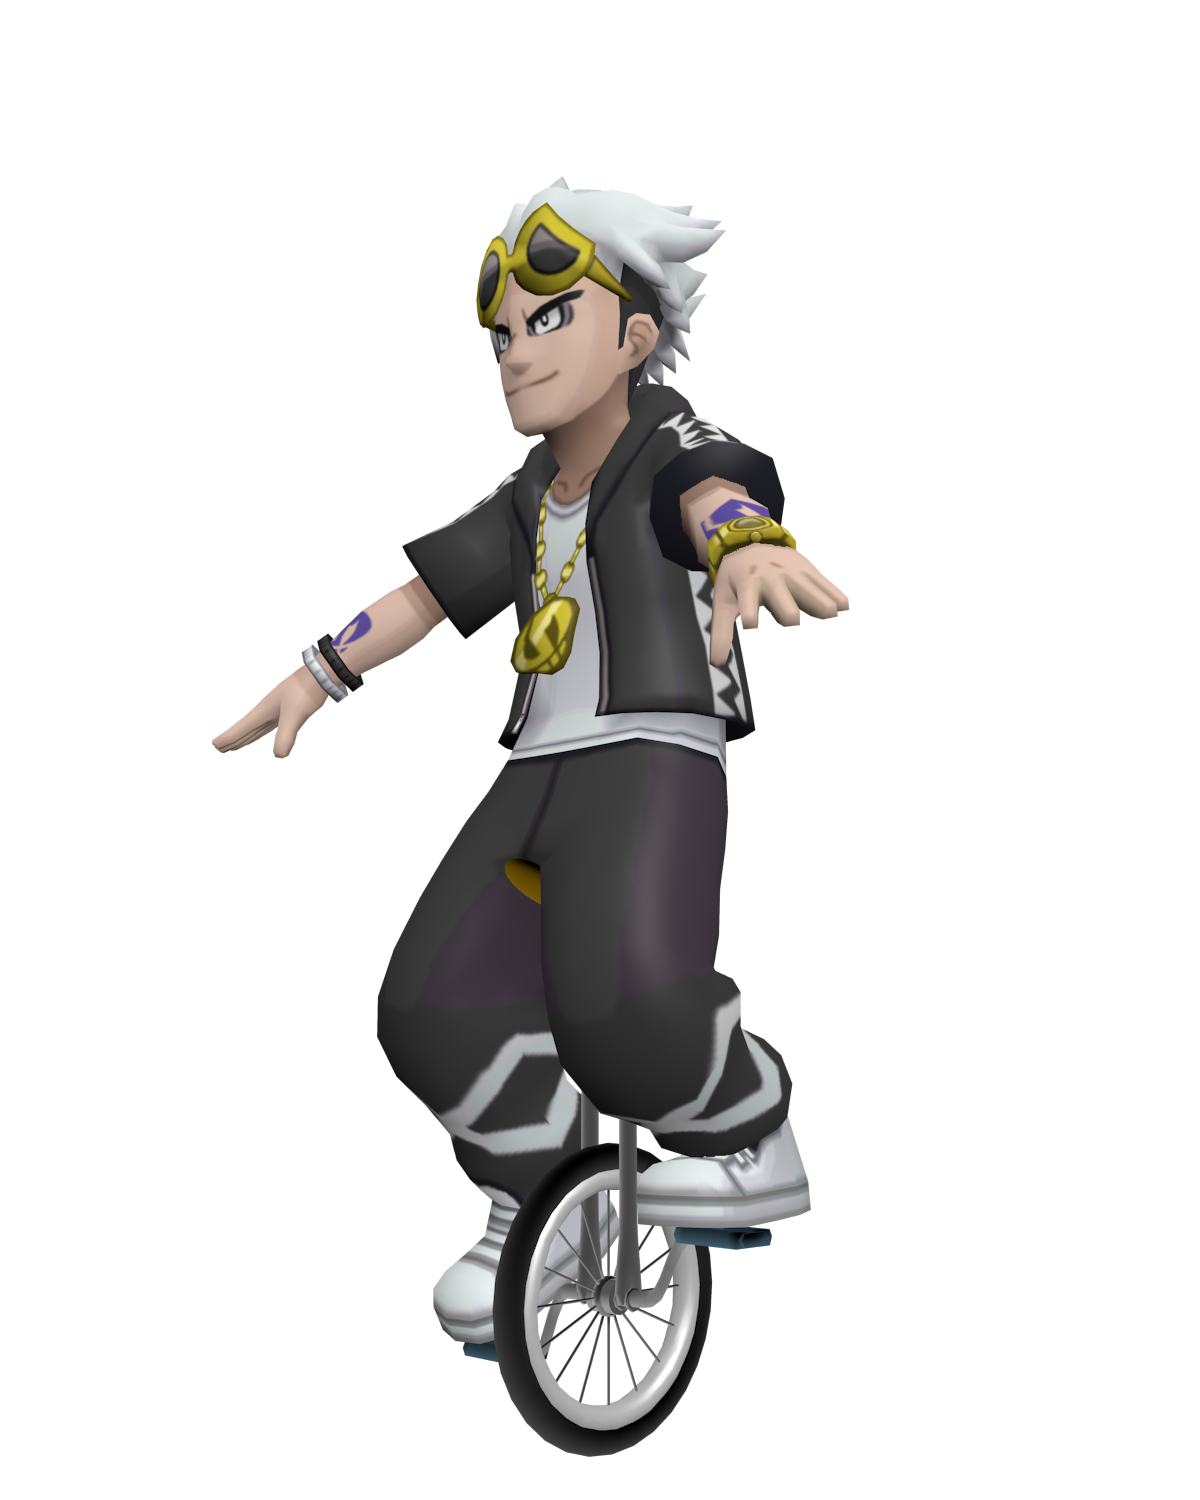 Boi transparent background. Dat guzma know your